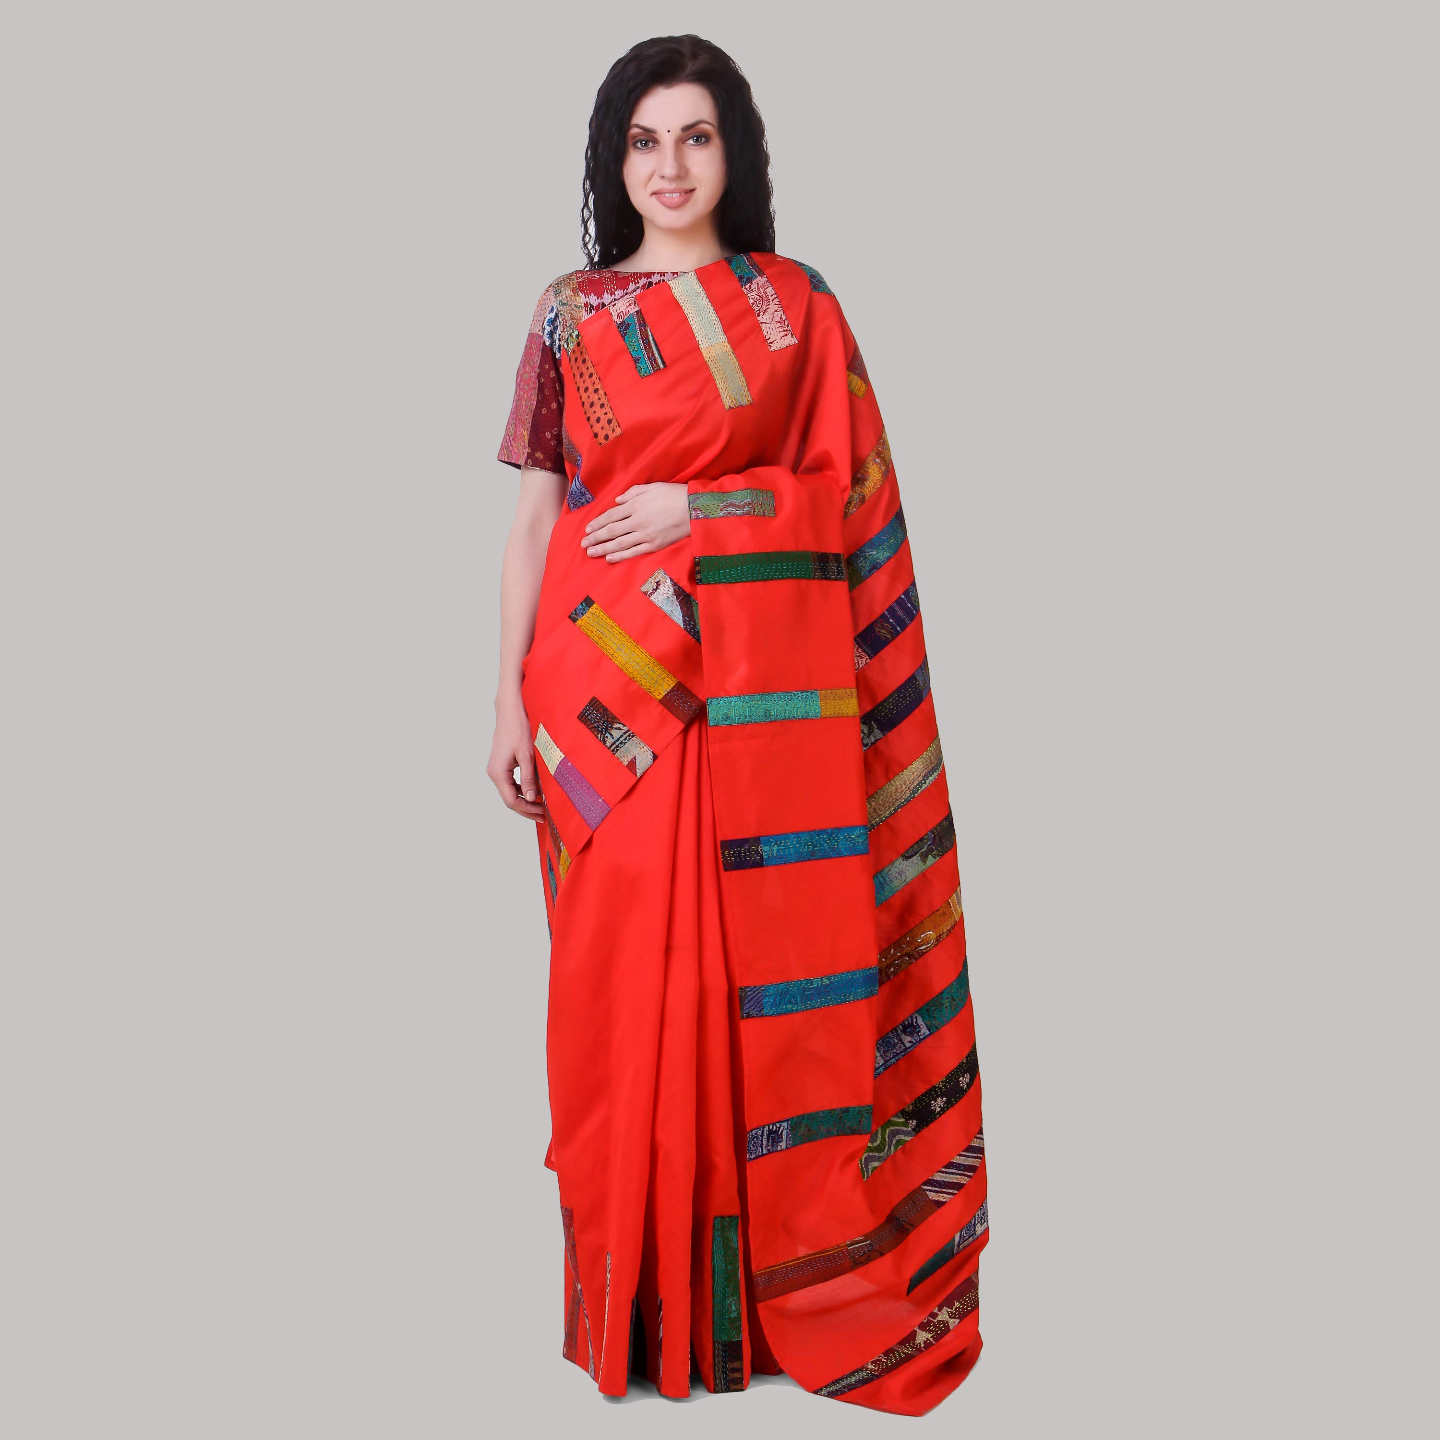 Red Dupion Kantha Stripe Applique Saree